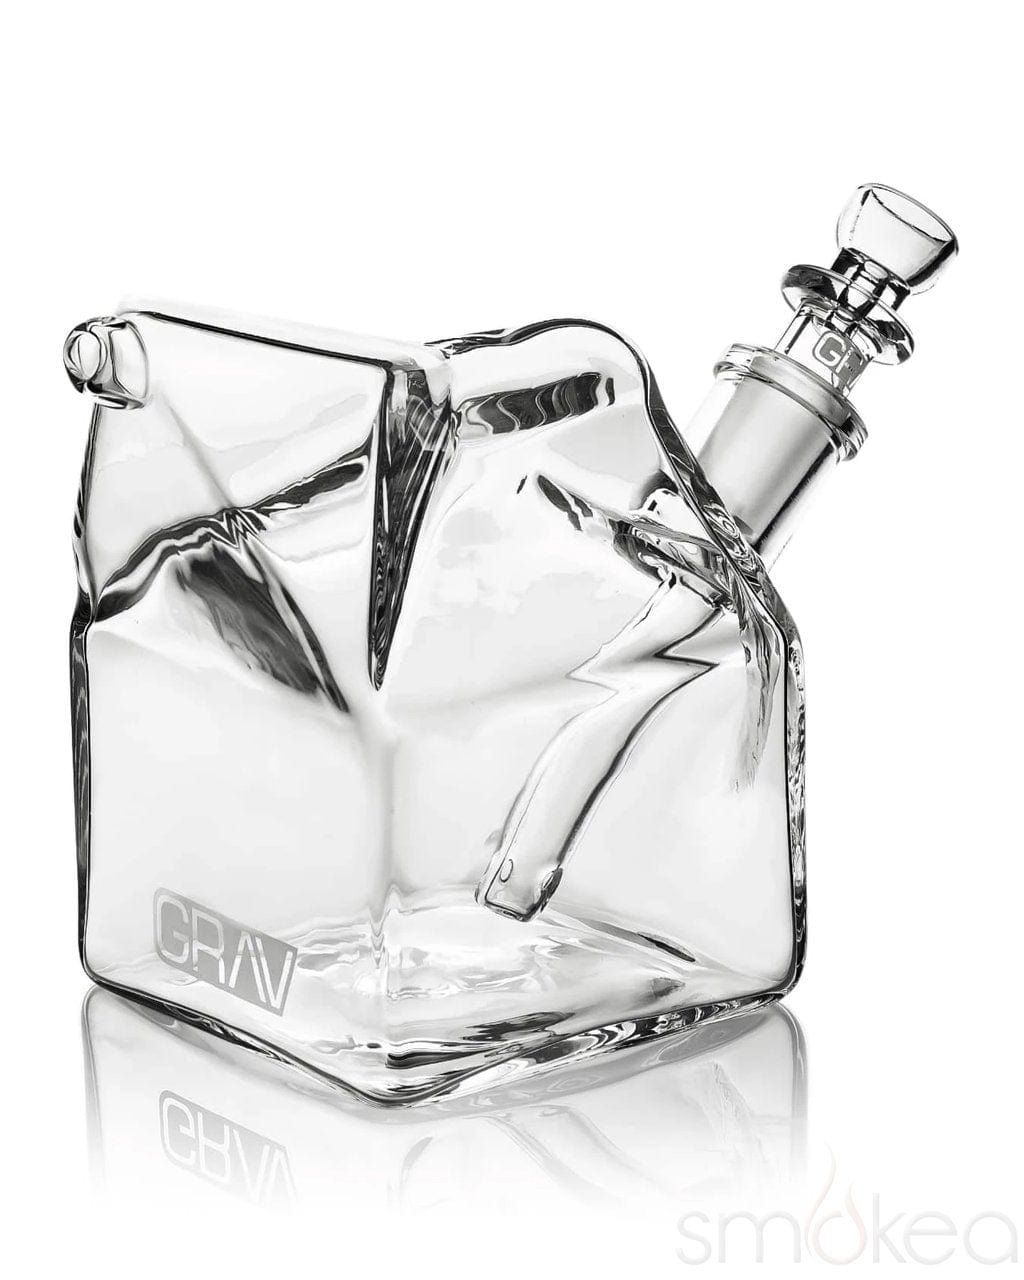 GRAV Sip Series Milk Carton Bubbler - SMOKEA